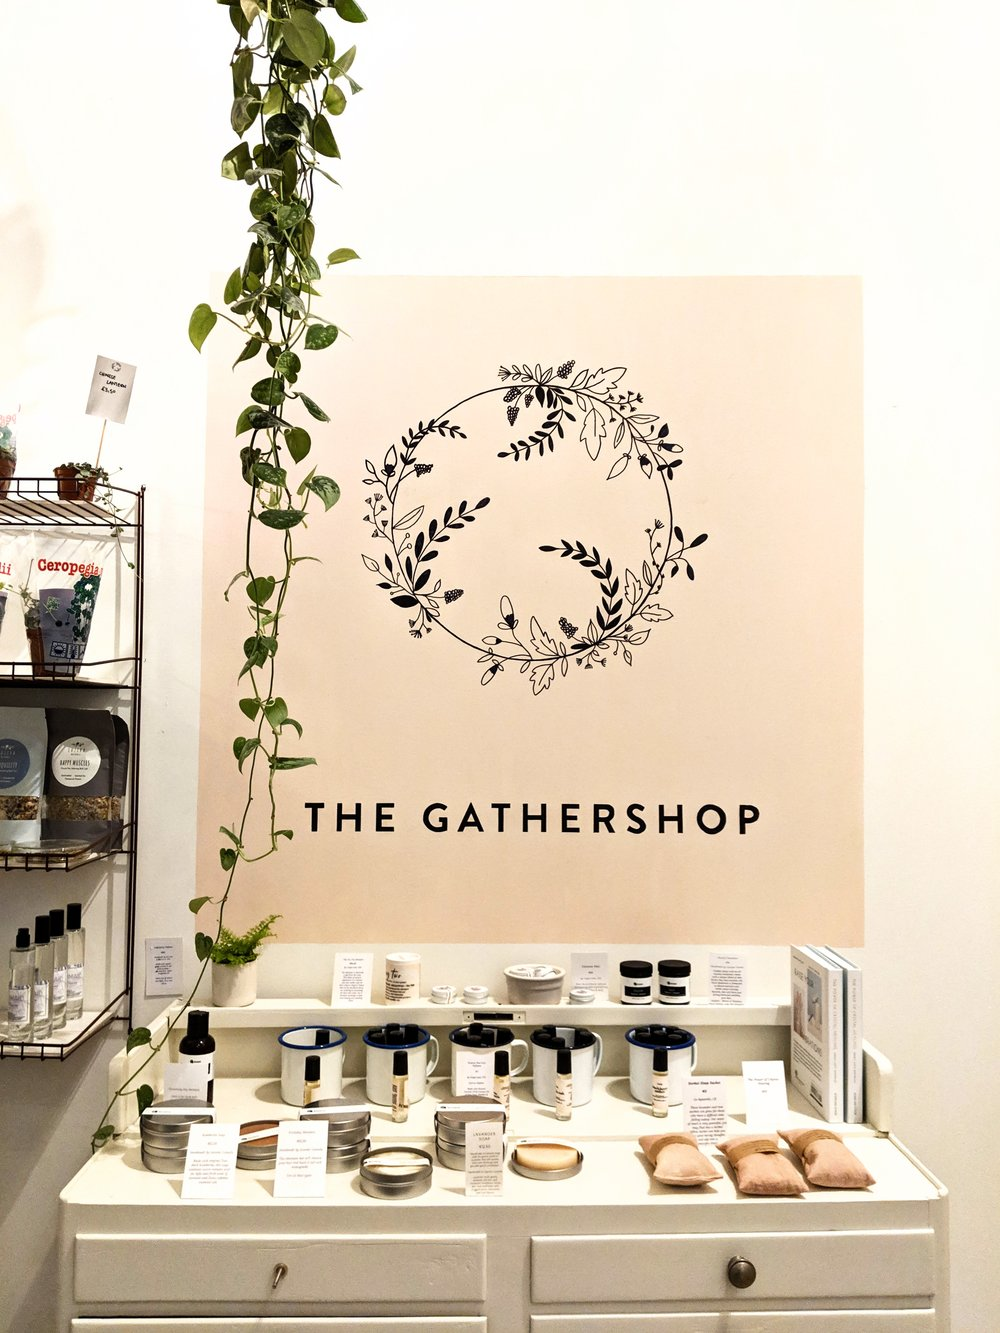 The Gather Shop  - Image by peastyle